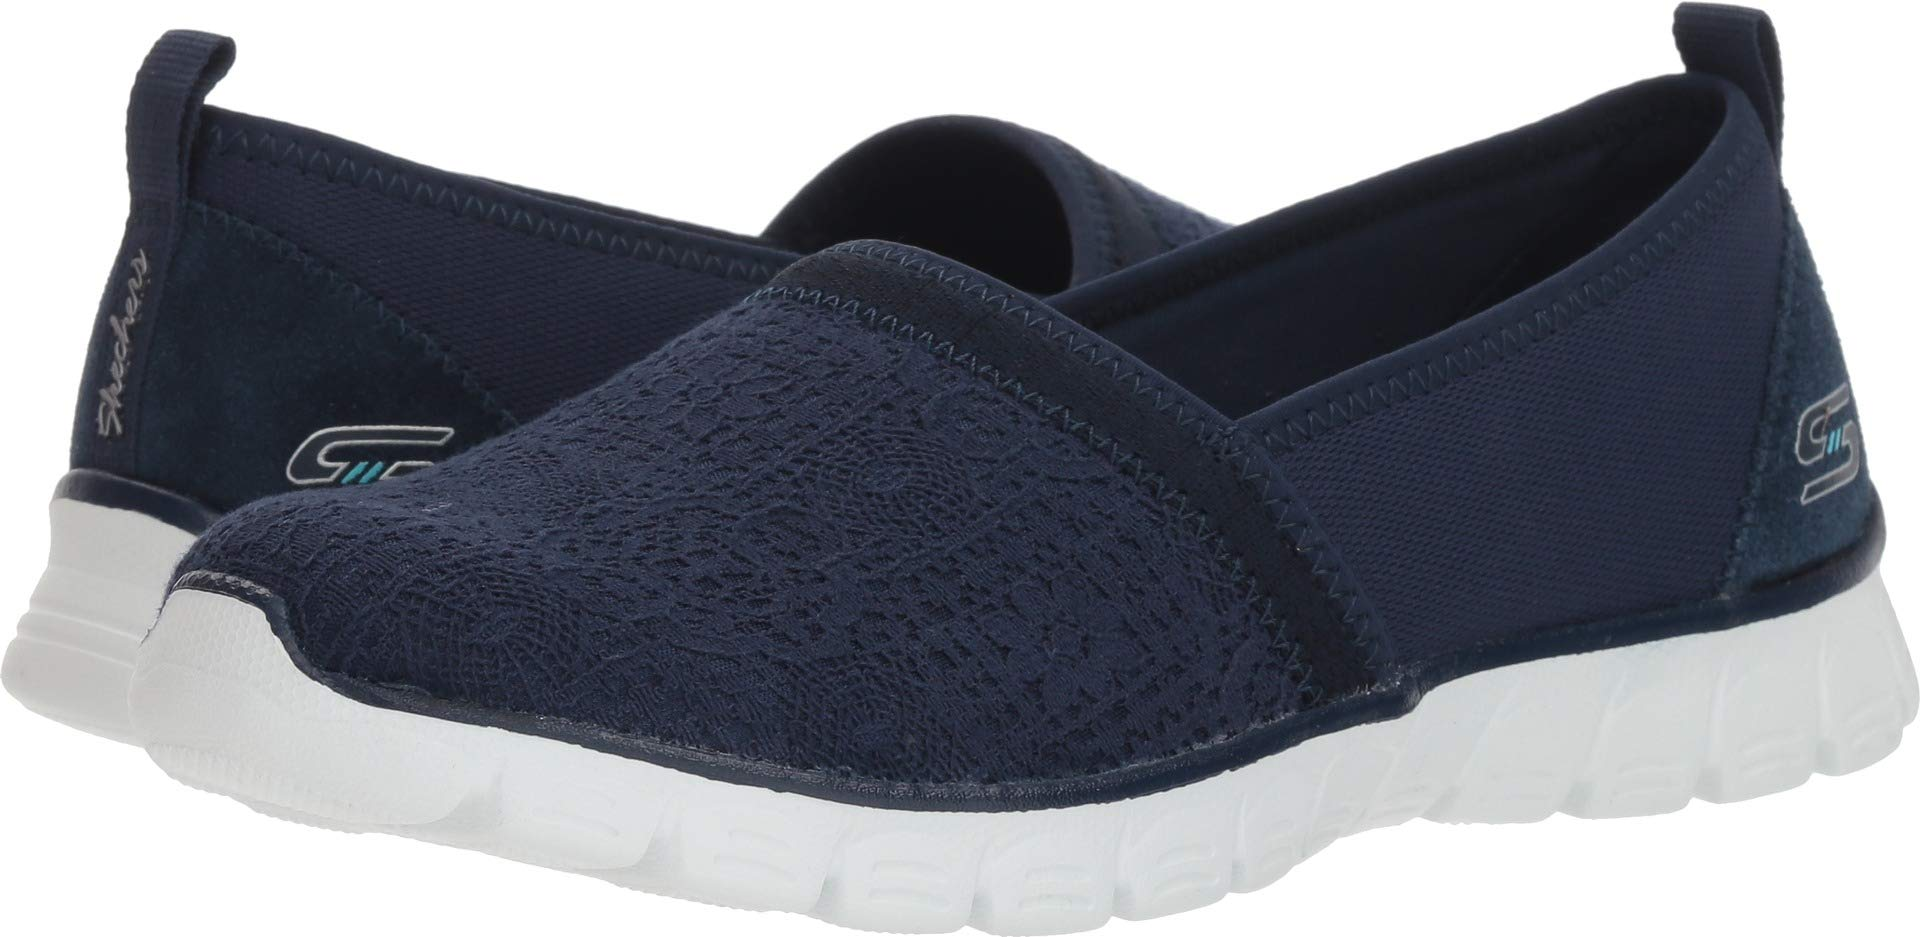 Skechers EZ Flex 3.0 Quick Escapade Womens Slip On Sneakers Navy 10